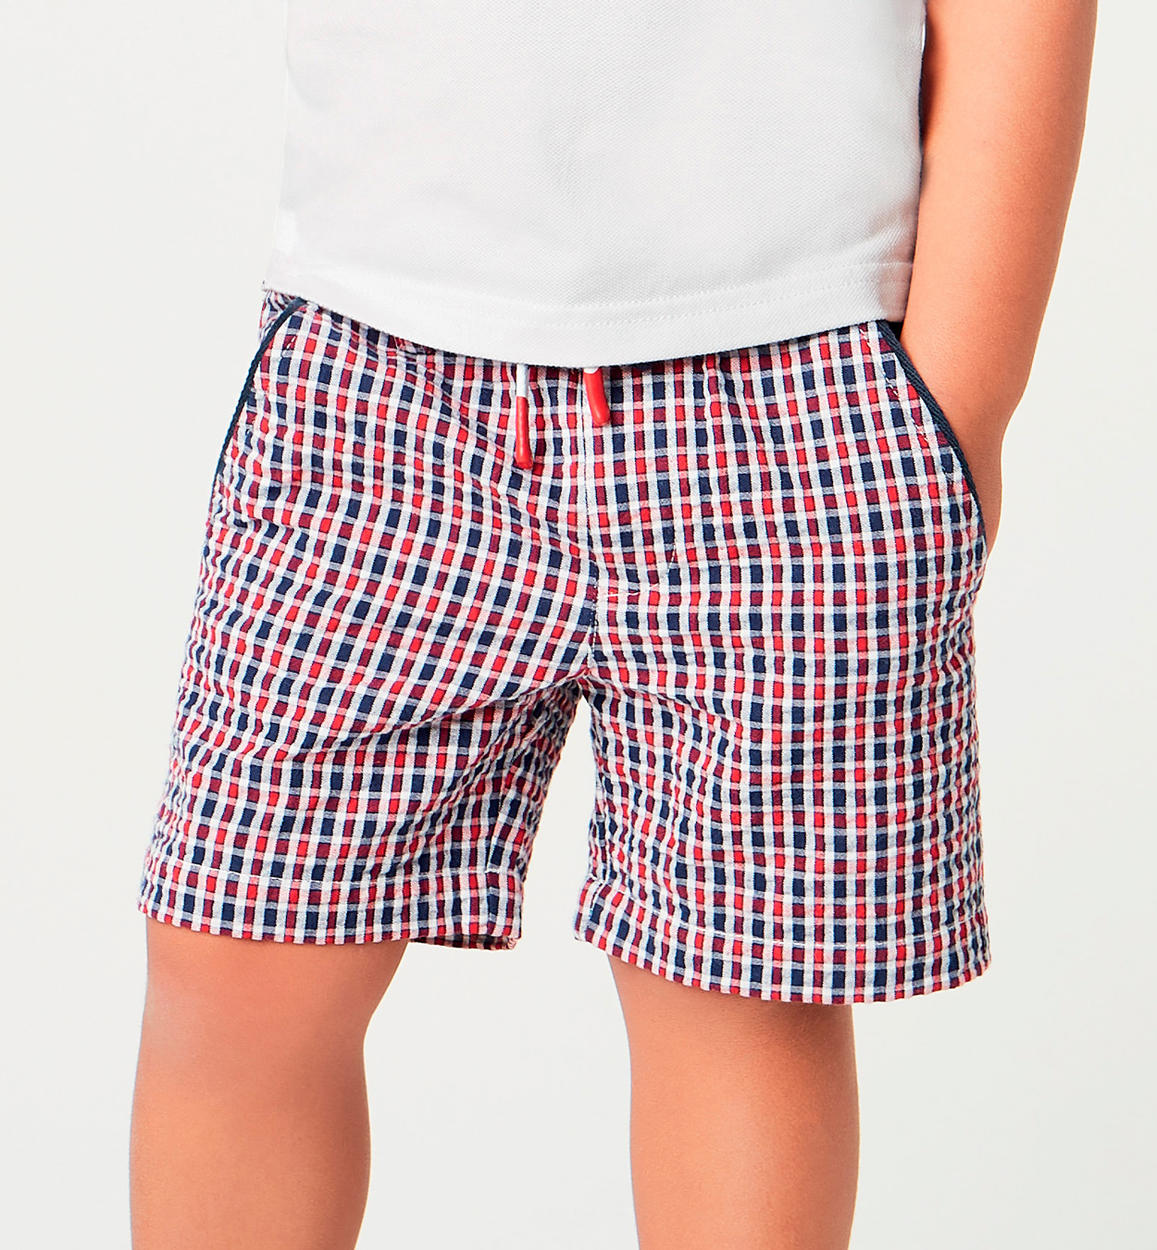 To 7 Years Boys 100Cotton For Sarabanda Bermuda Shorts Months Comfortable Boy¿s 6 Baby From xBdCWoer